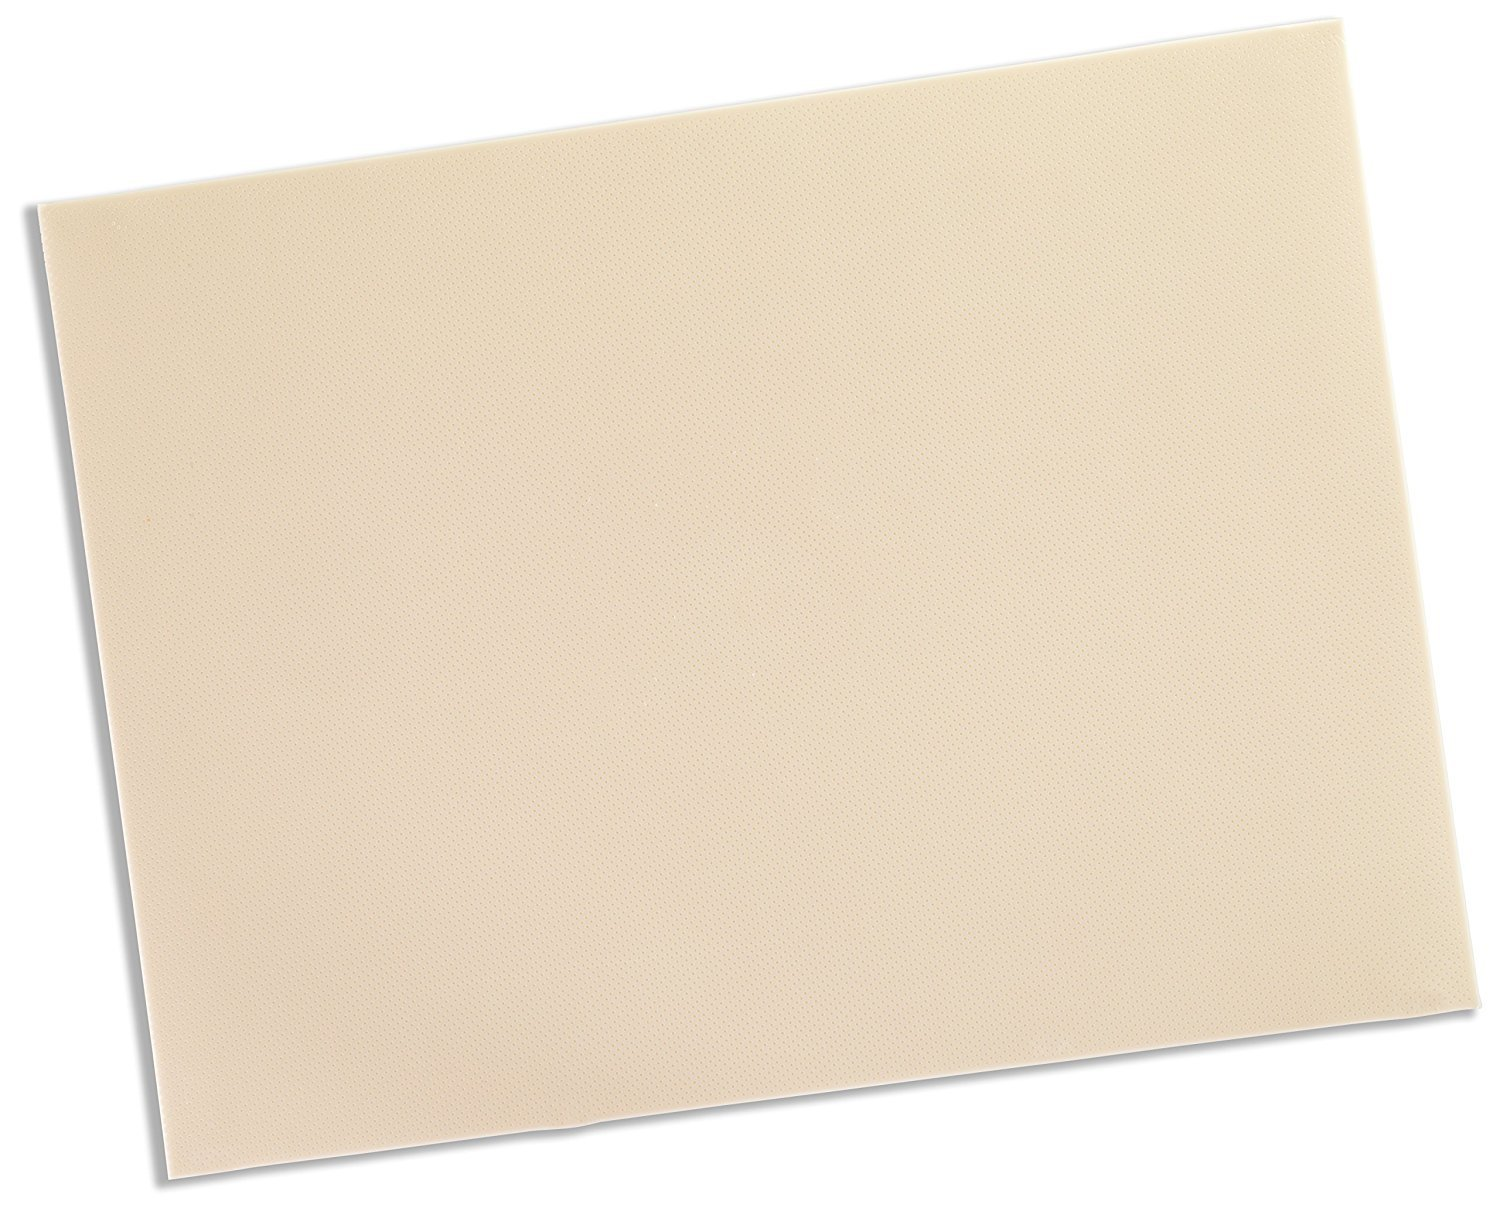 Rolyan Splinting Material Sheet, Aquaplast-T Watercolors, Beige, 1/16'' x 18'' x 24'', 13% UltraPerf Perforated, Single Sheet